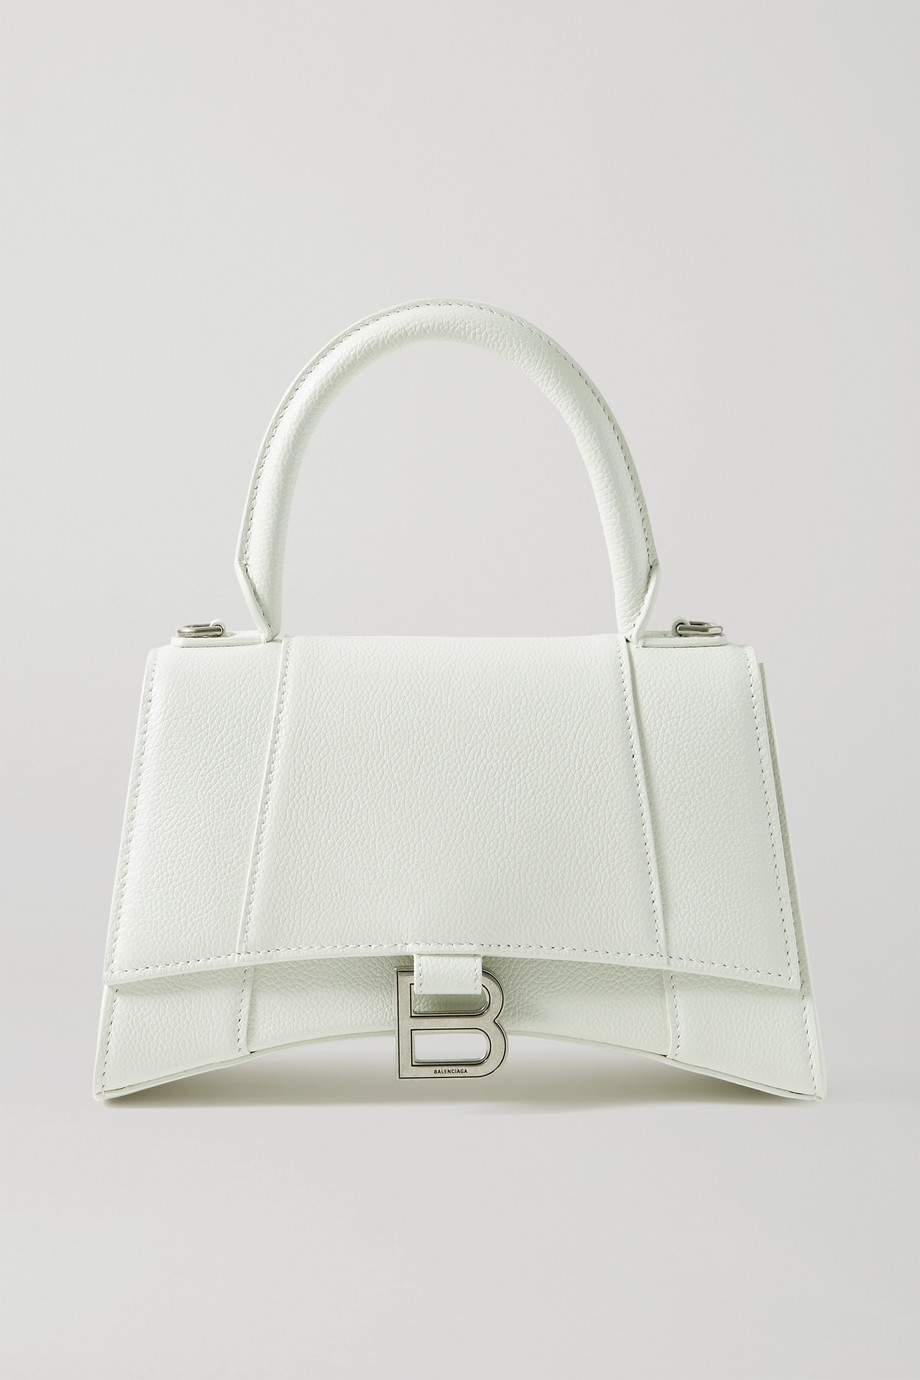 Balenciaga Hourglass small textured-leather tote